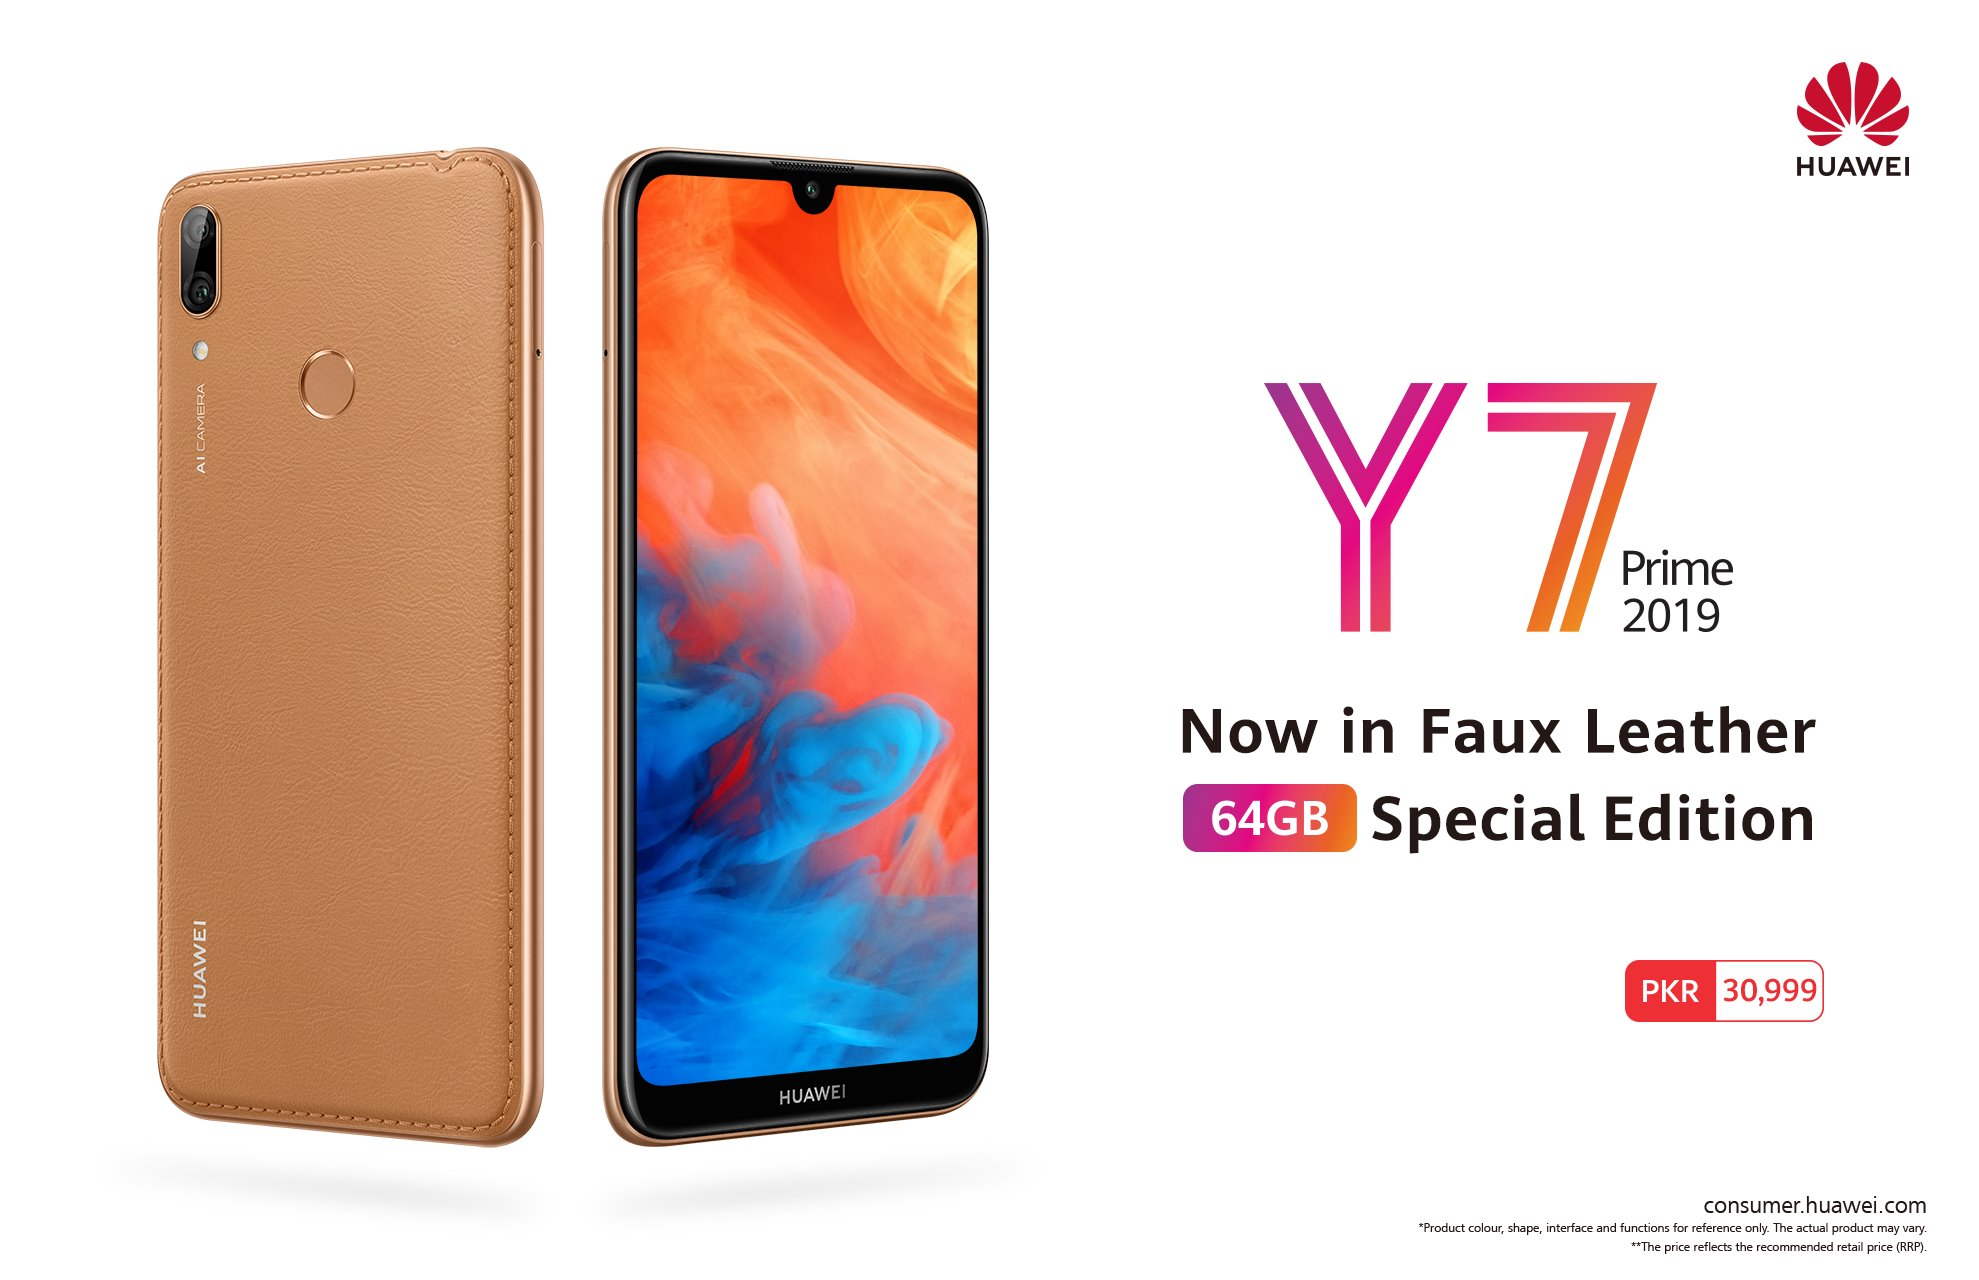 Advertise a new version of the Huawei Y7 Prime 2019 phone with a